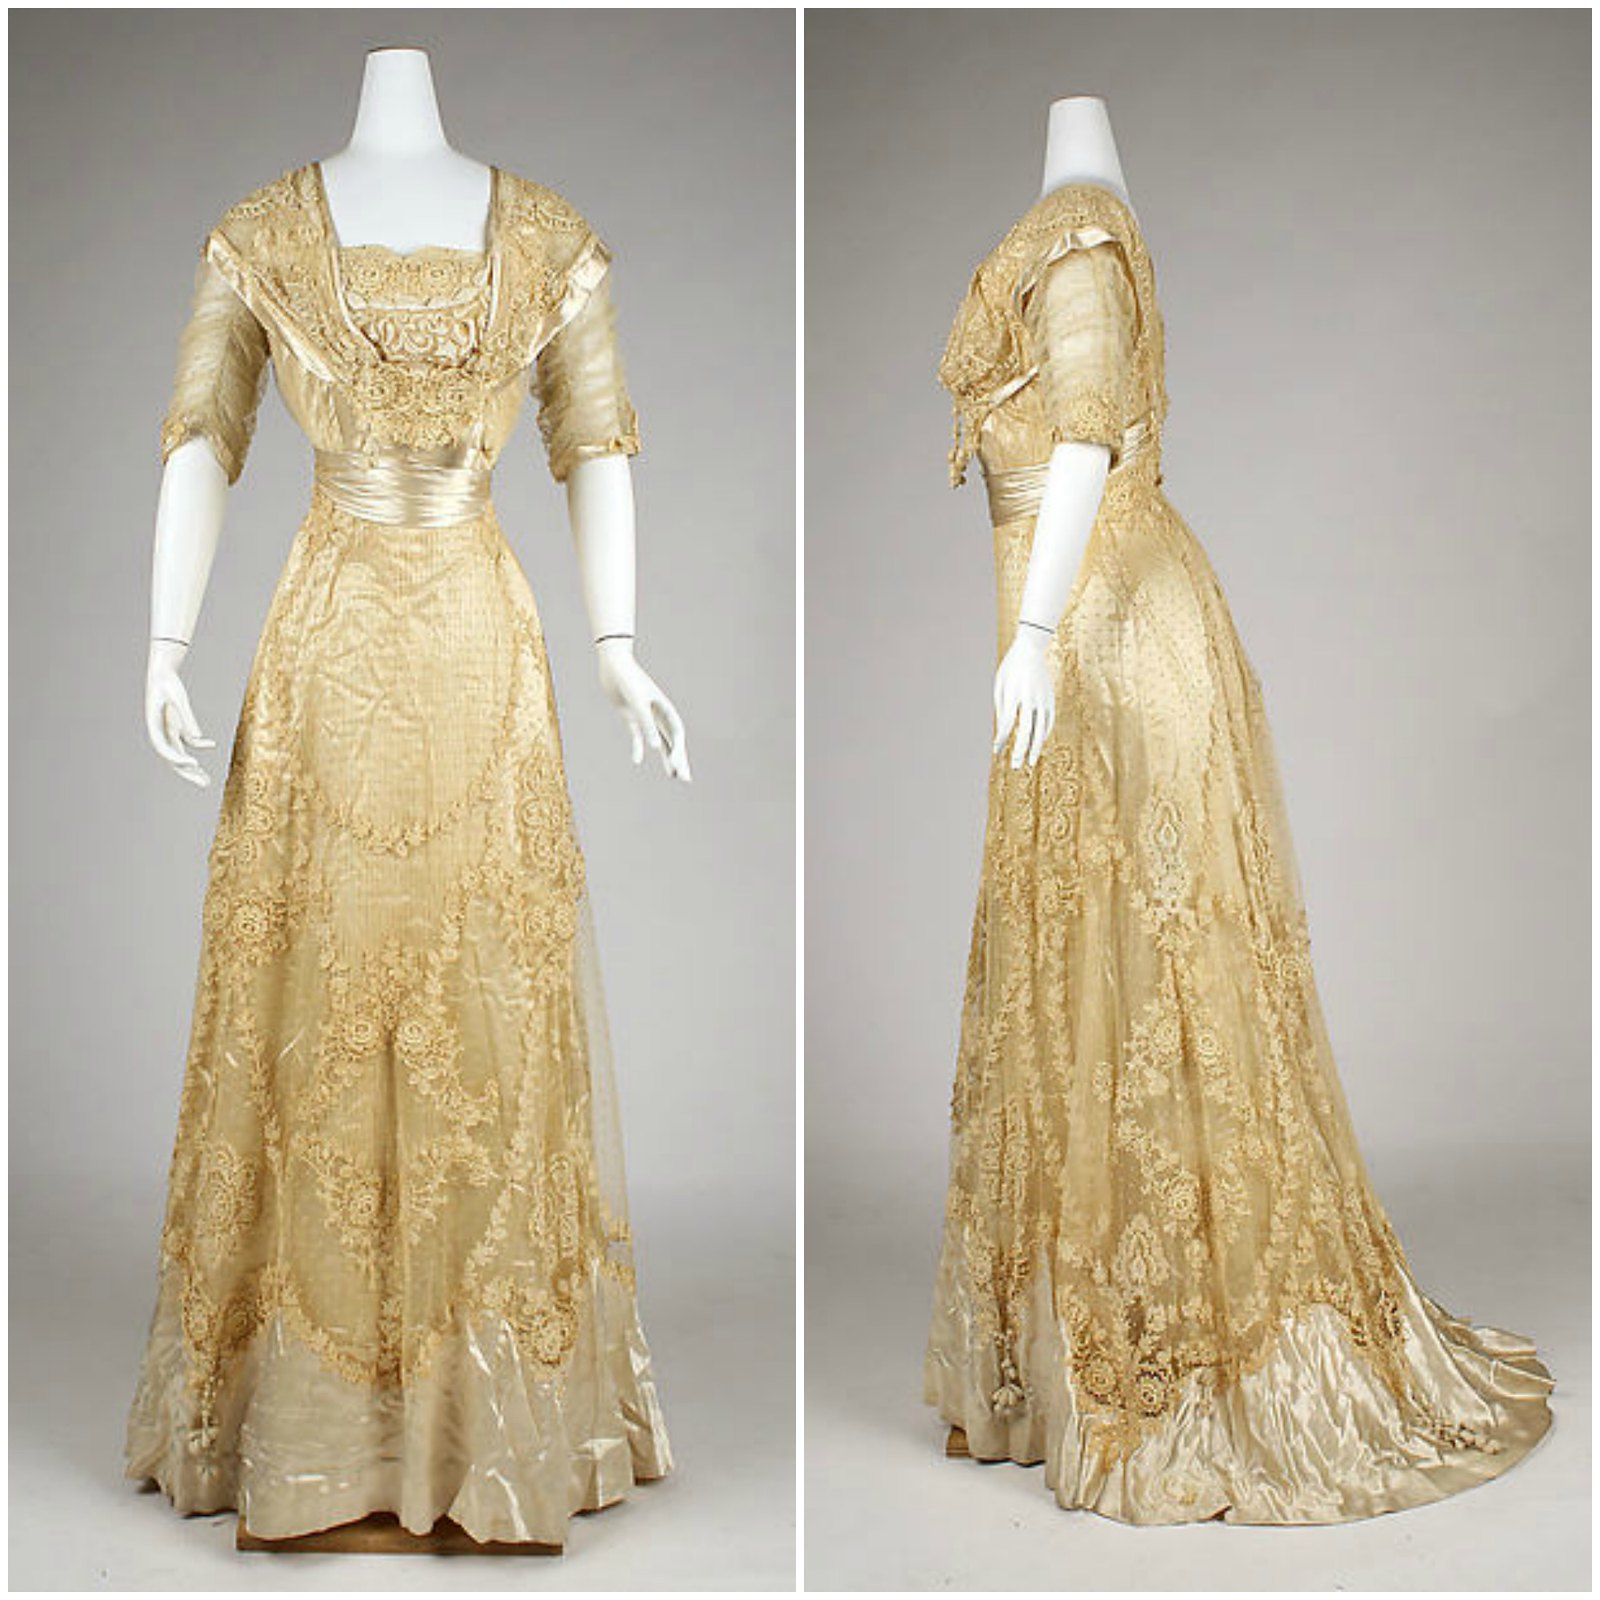 1908 Ball gown. American. Cotton, linen, silk. metmuseum